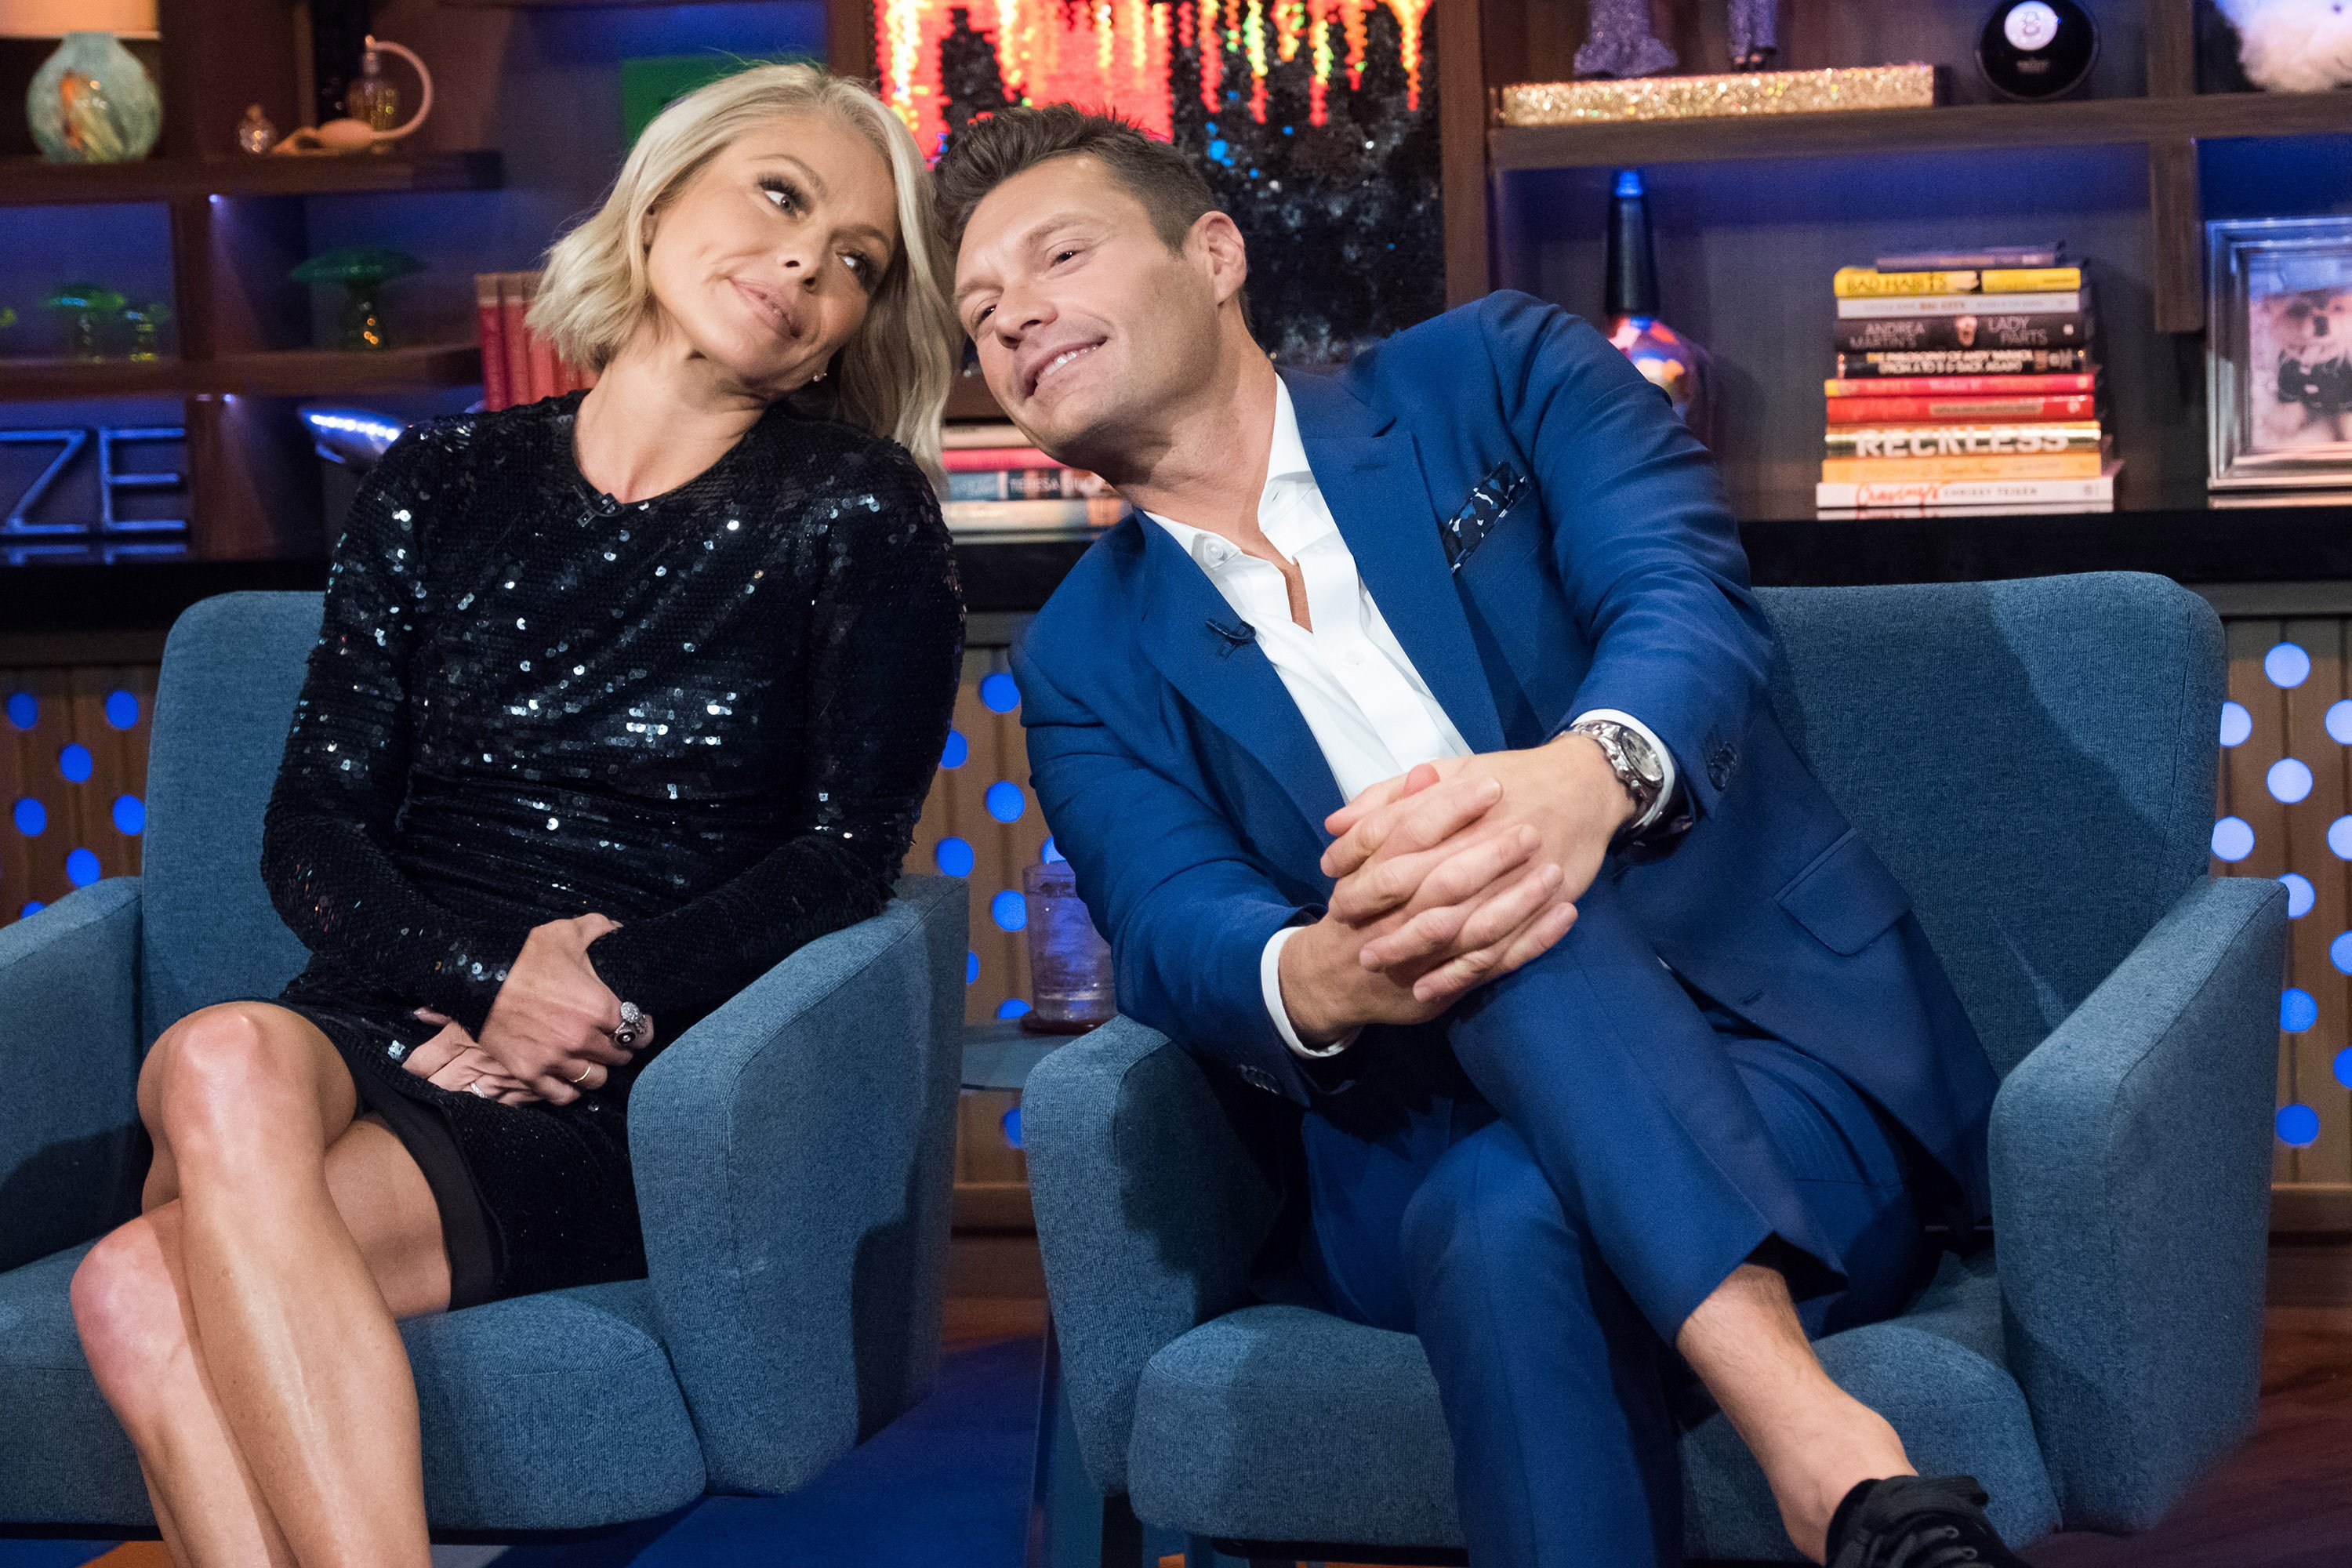 """Kelly Ripa and Ryan Seacrest during an episode of """"Watch What Happens Live With Andy Cohen"""" on September 21, 2017.   Source: Getty Images."""